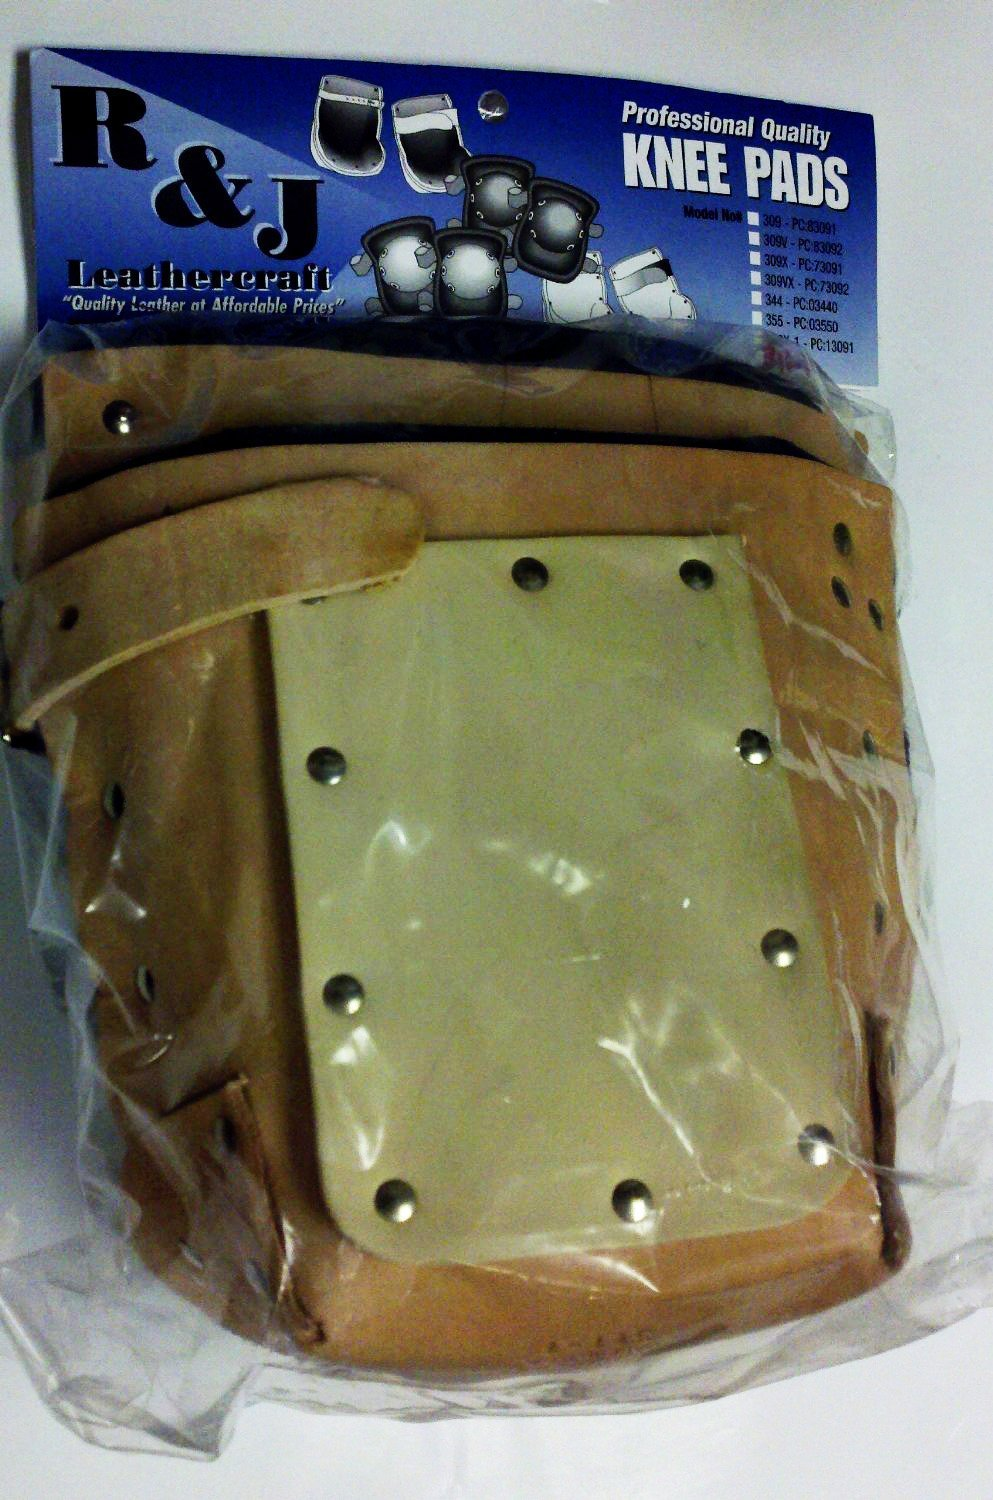 """R&J Leathercraft, 311-1, Extra Heavy Duty Professional Knee Pads w/ Neolite Sole, 1"""" wide Leather Strap, Made in USA*****"""